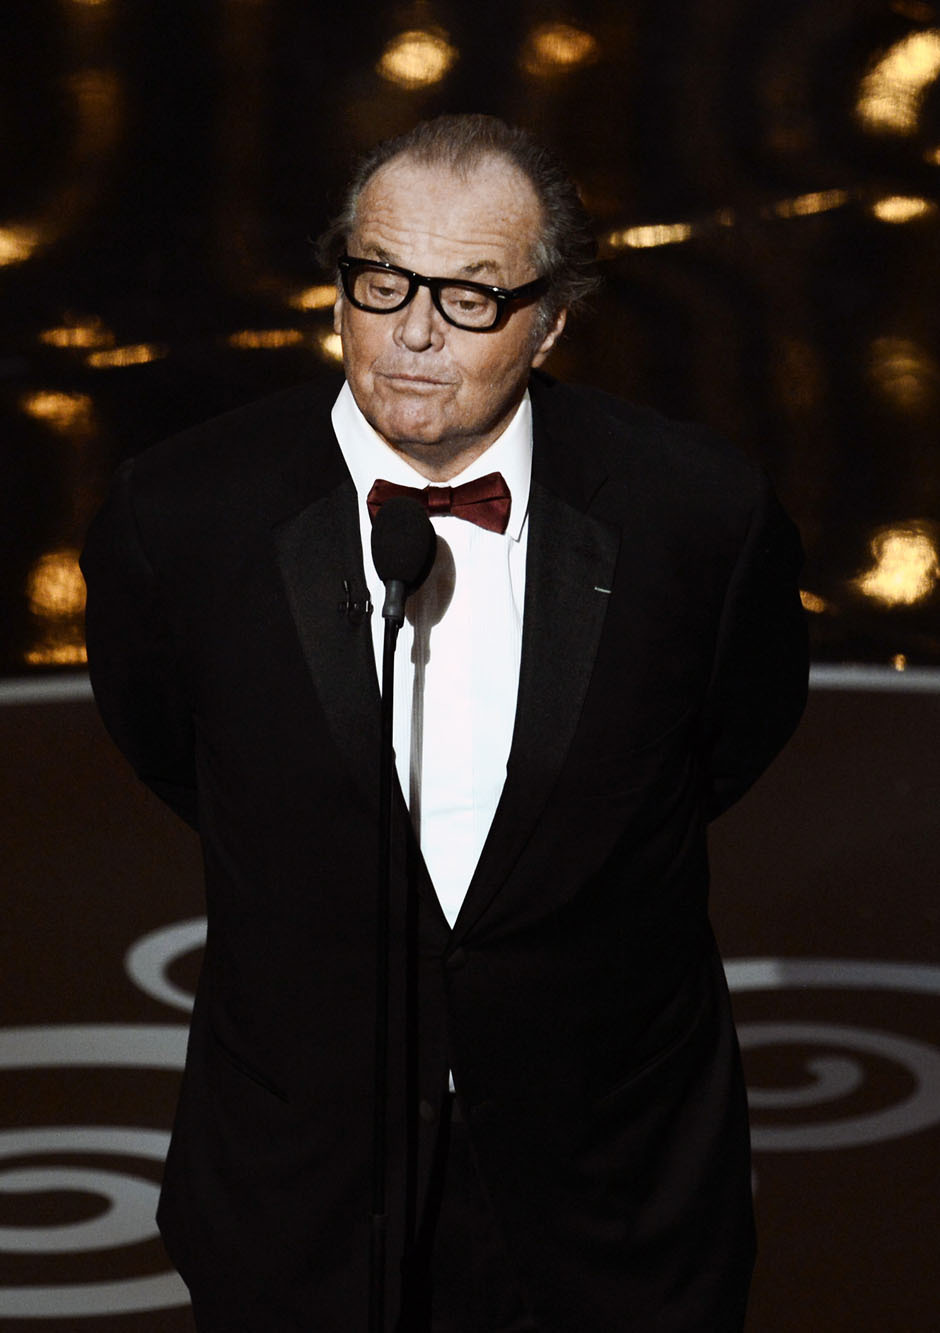 nparts:  Jack Nicholson onstage for the Best Picture award. (Photo by Kevin Winter/Getty Images) More: http://natpo.st/XzvSrs